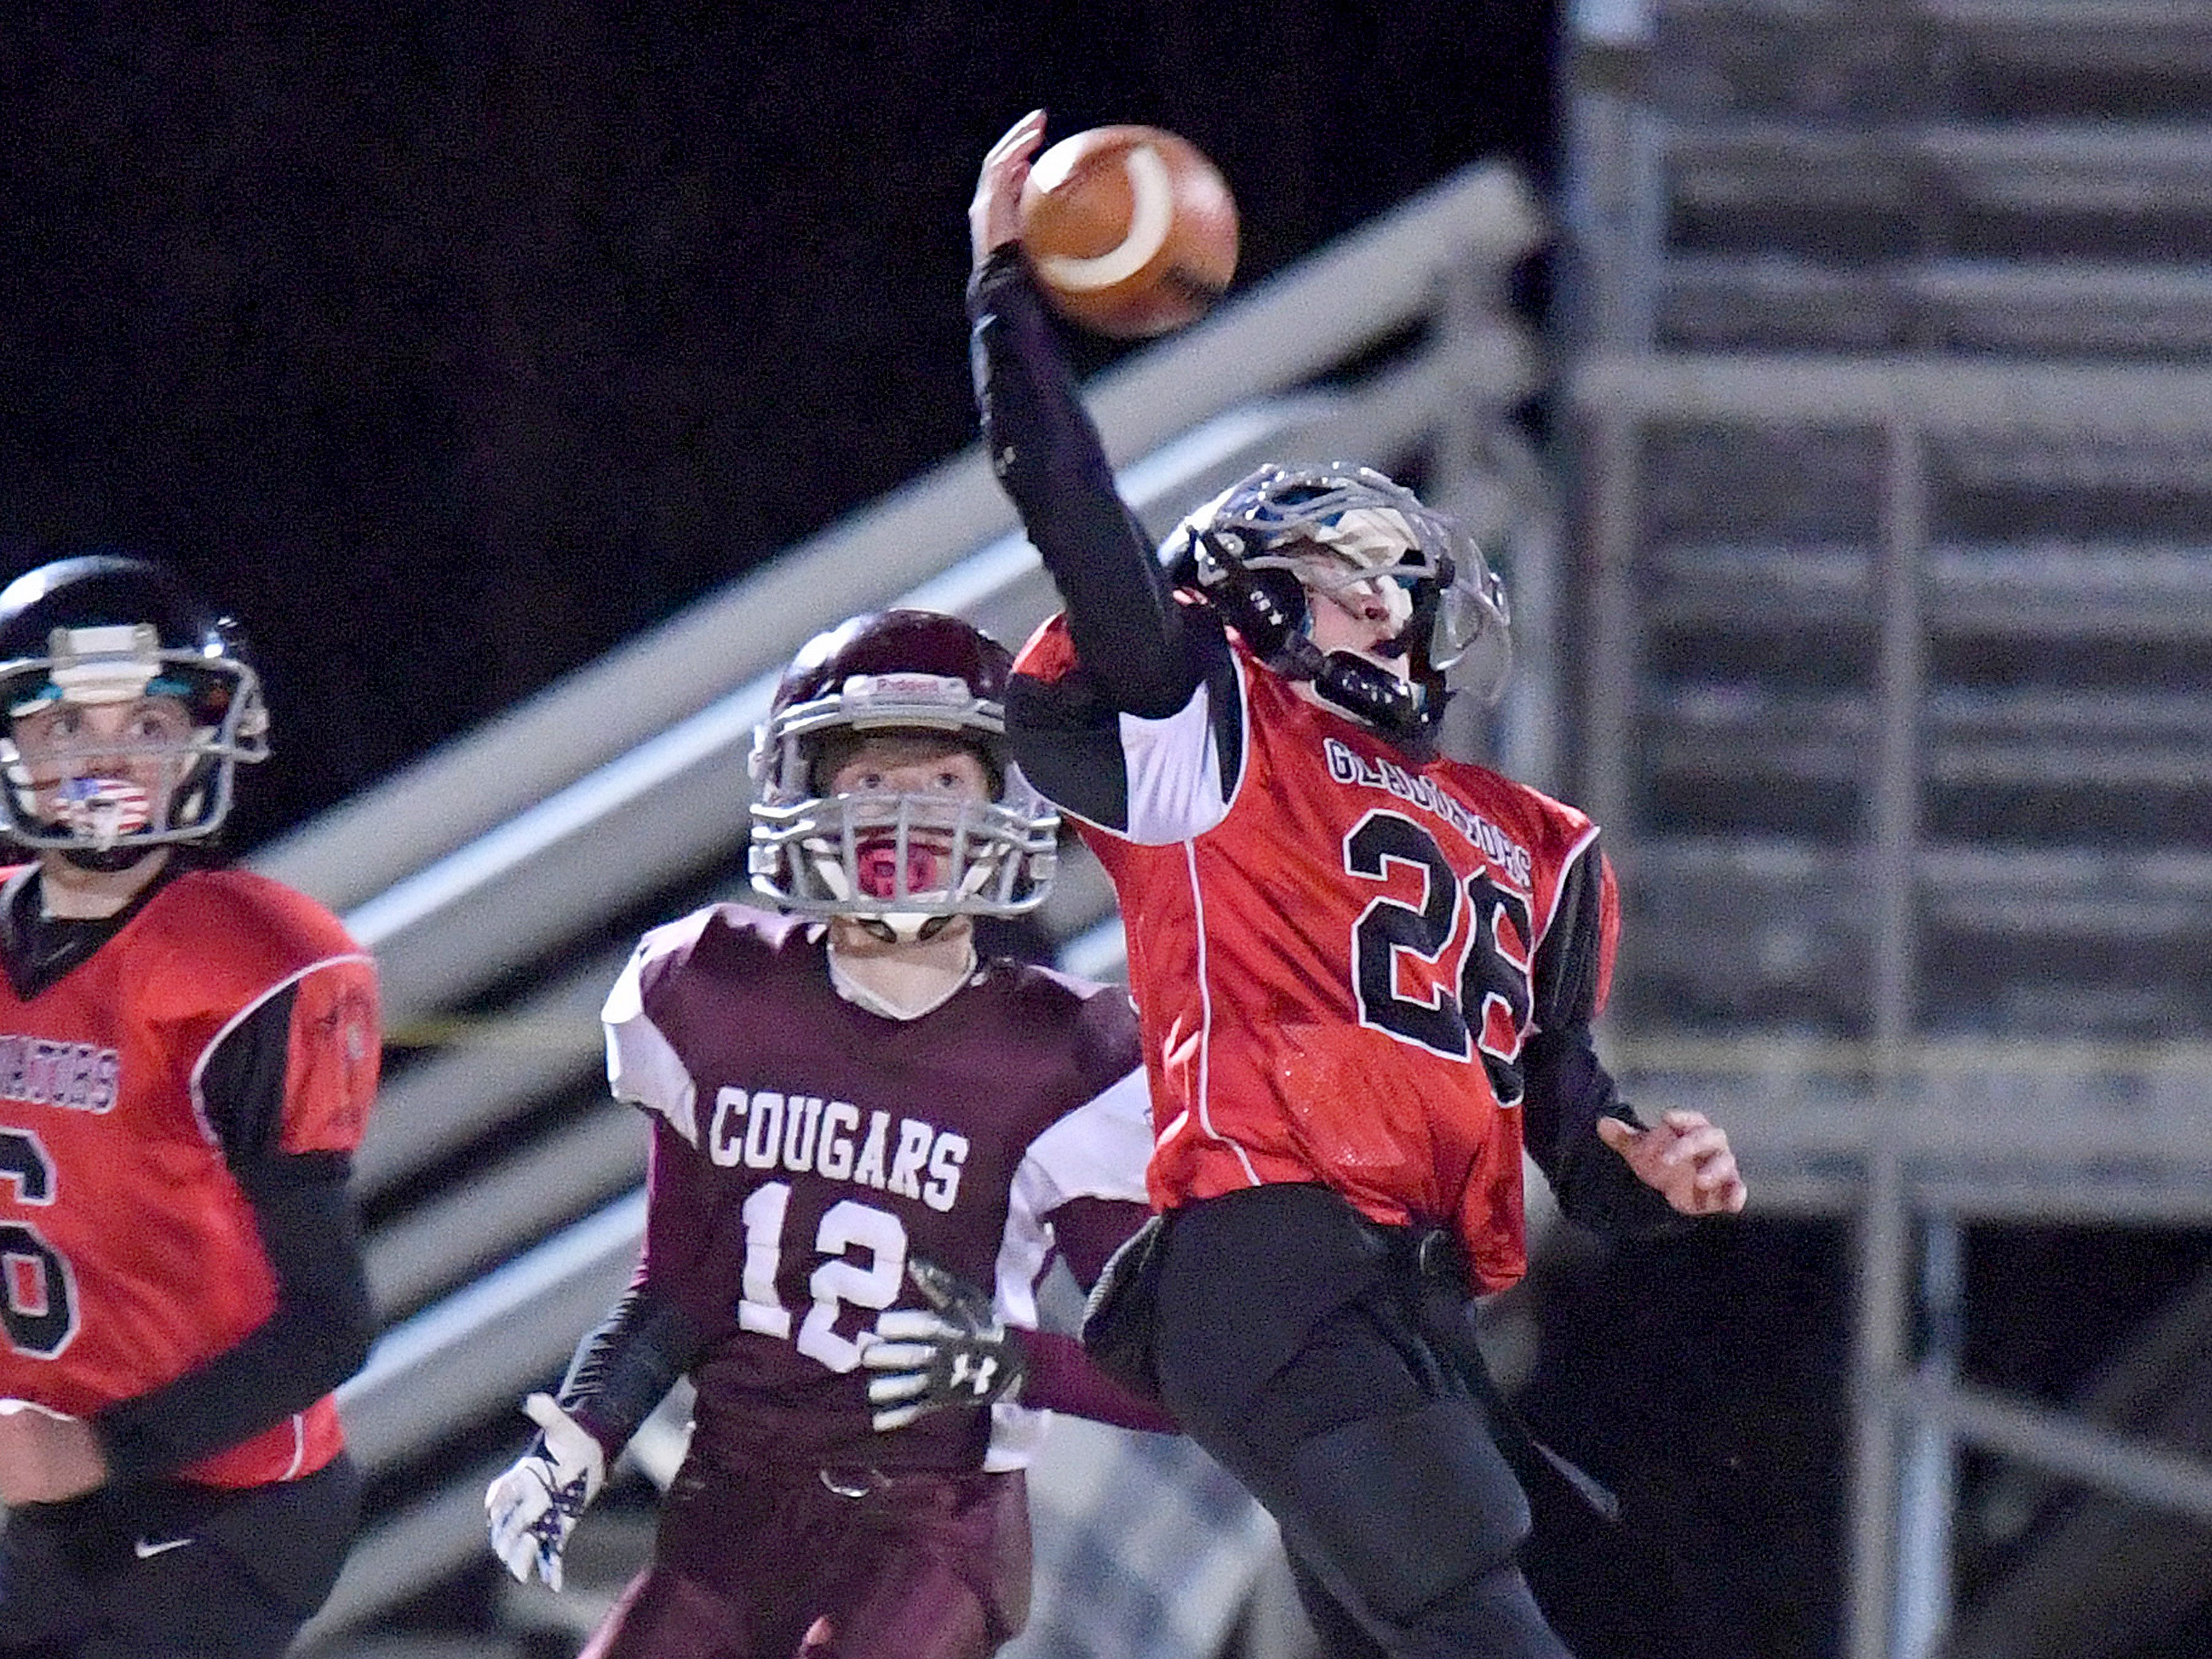 RIverheads' Cole Fletcher gets his hands on a pass intended for Stuarts Draft's Zachary Claytor but is unable to come away with the interception during the Augusta County Quarterback Club Seniors Super Bowl in Fishersville on Sunday, Nov. 11, 2018.  RIverheads defeats Stuarts Draft, 38-6.